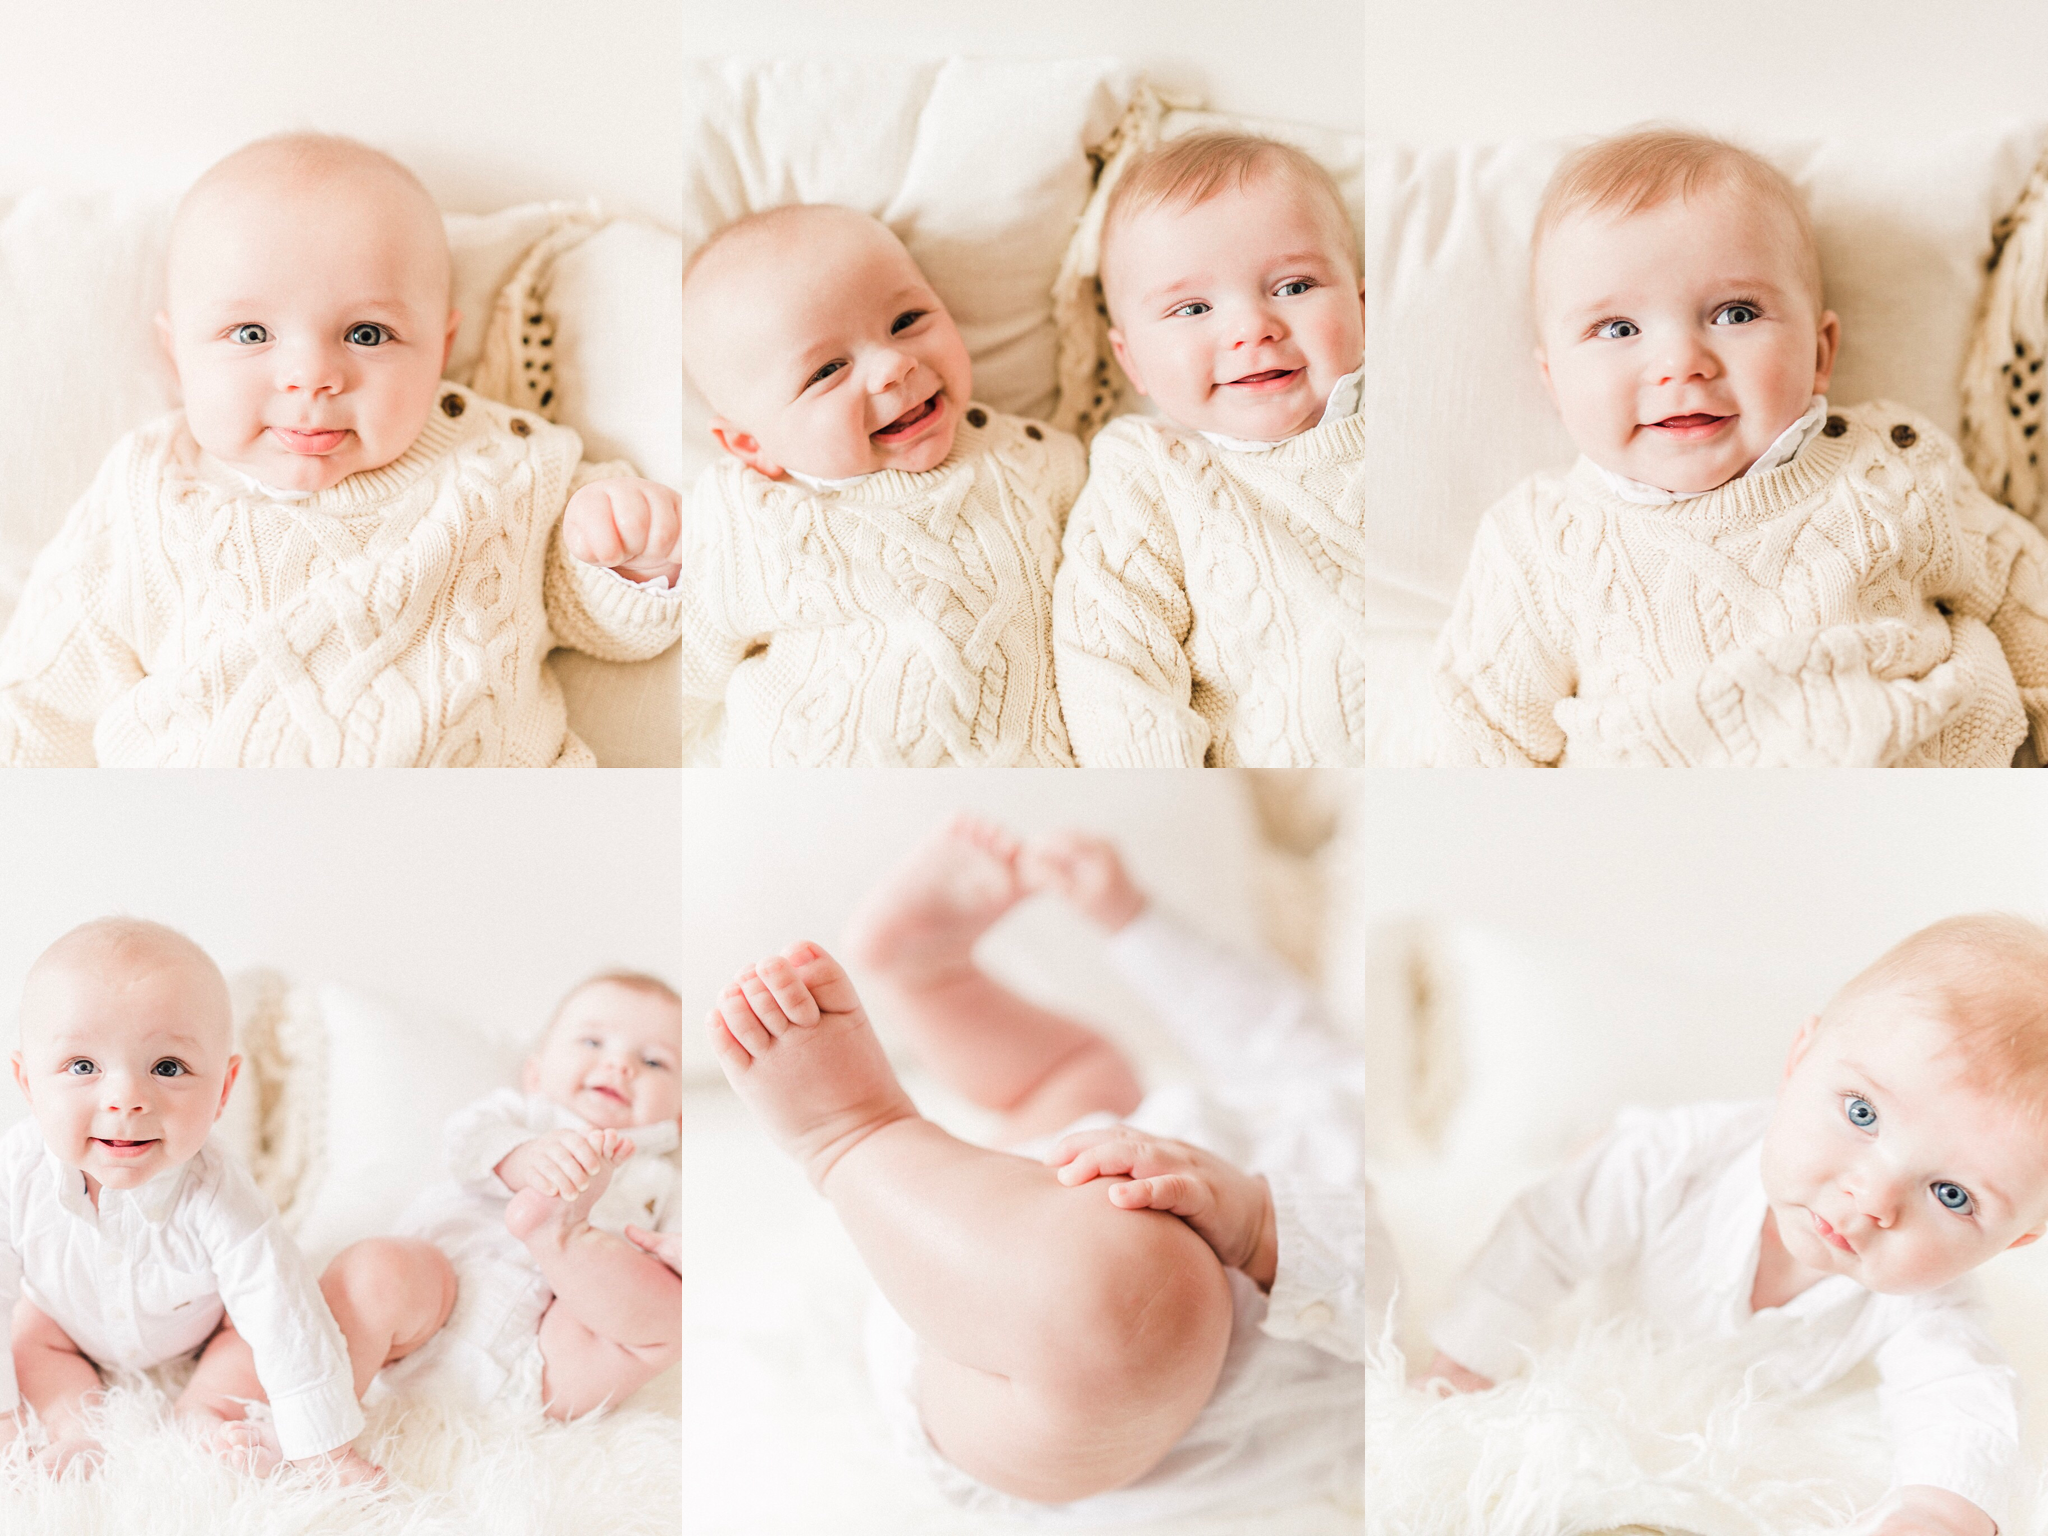 Henry + Owen | Bright Eyed 6 Month Milestone Photography | Noblesville, IN